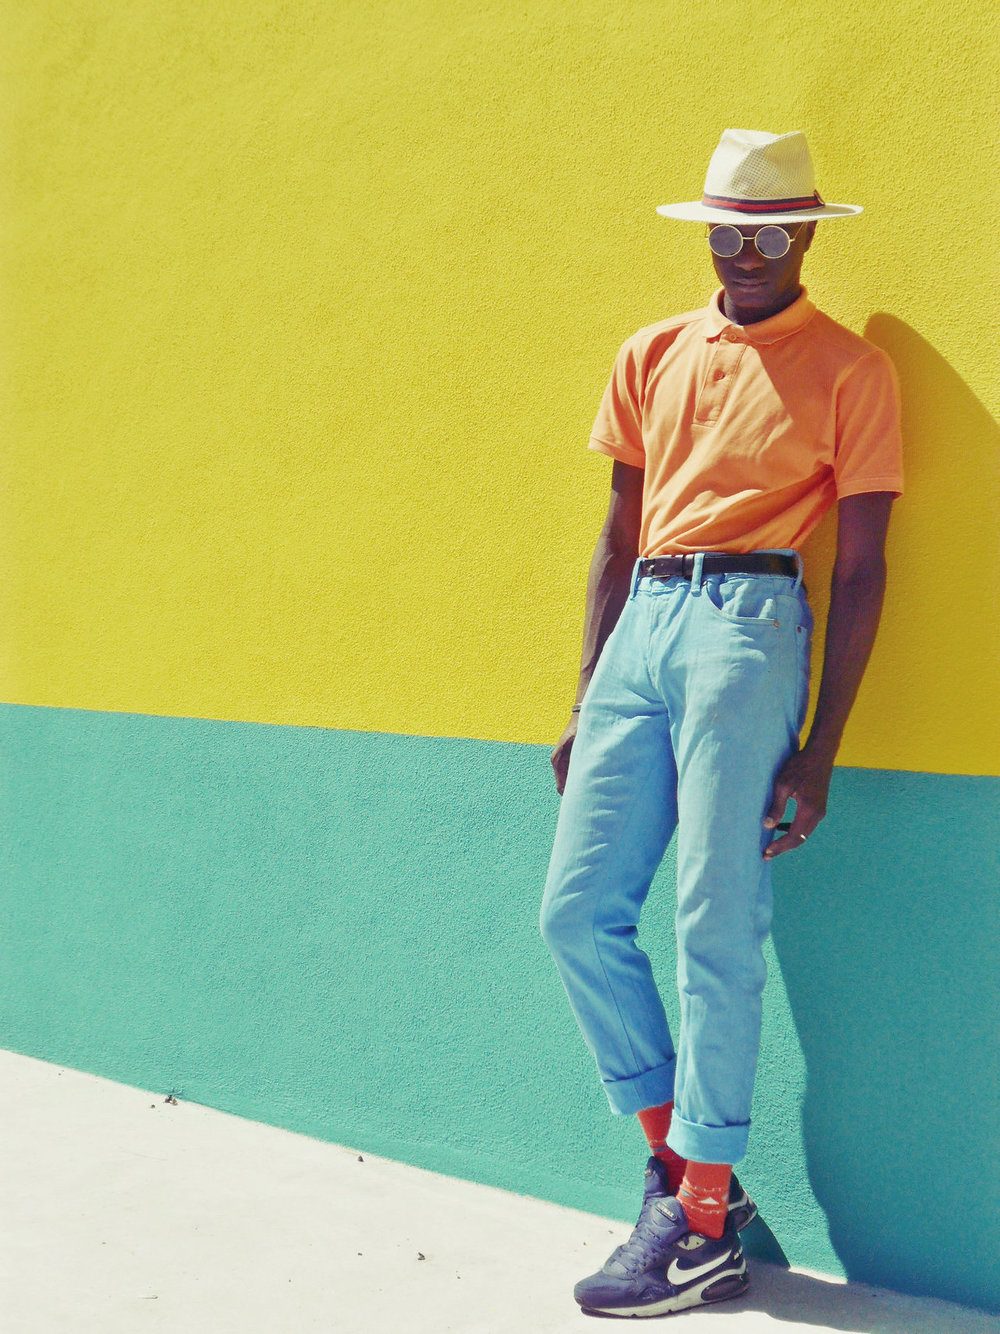 This is just so retro, I can't even handle it. And I love the two-toned outfit against the two-toned wall.  Abdel, Lisbon , Photographed by Luís Areias | From:  blackfashion.tumblr.com